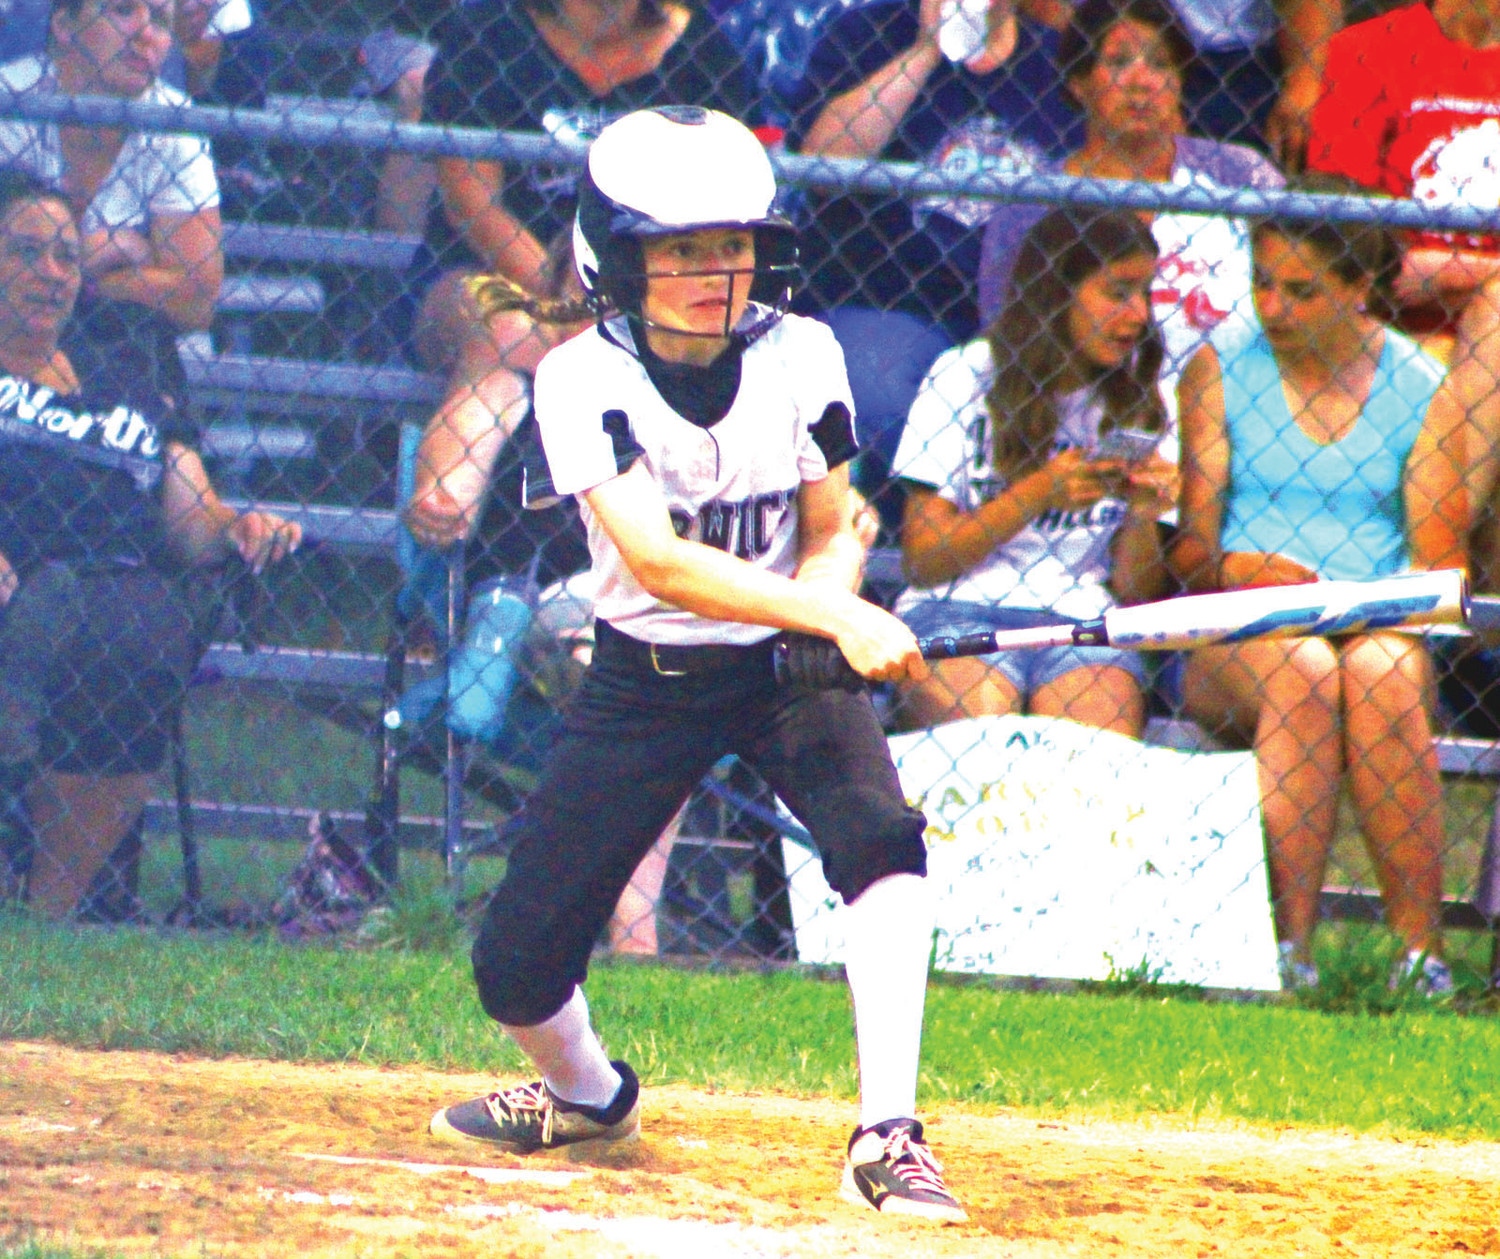 AT THE DISH: Warwick Little League North's Katie Motta makes contact against Cranston National Budlong.